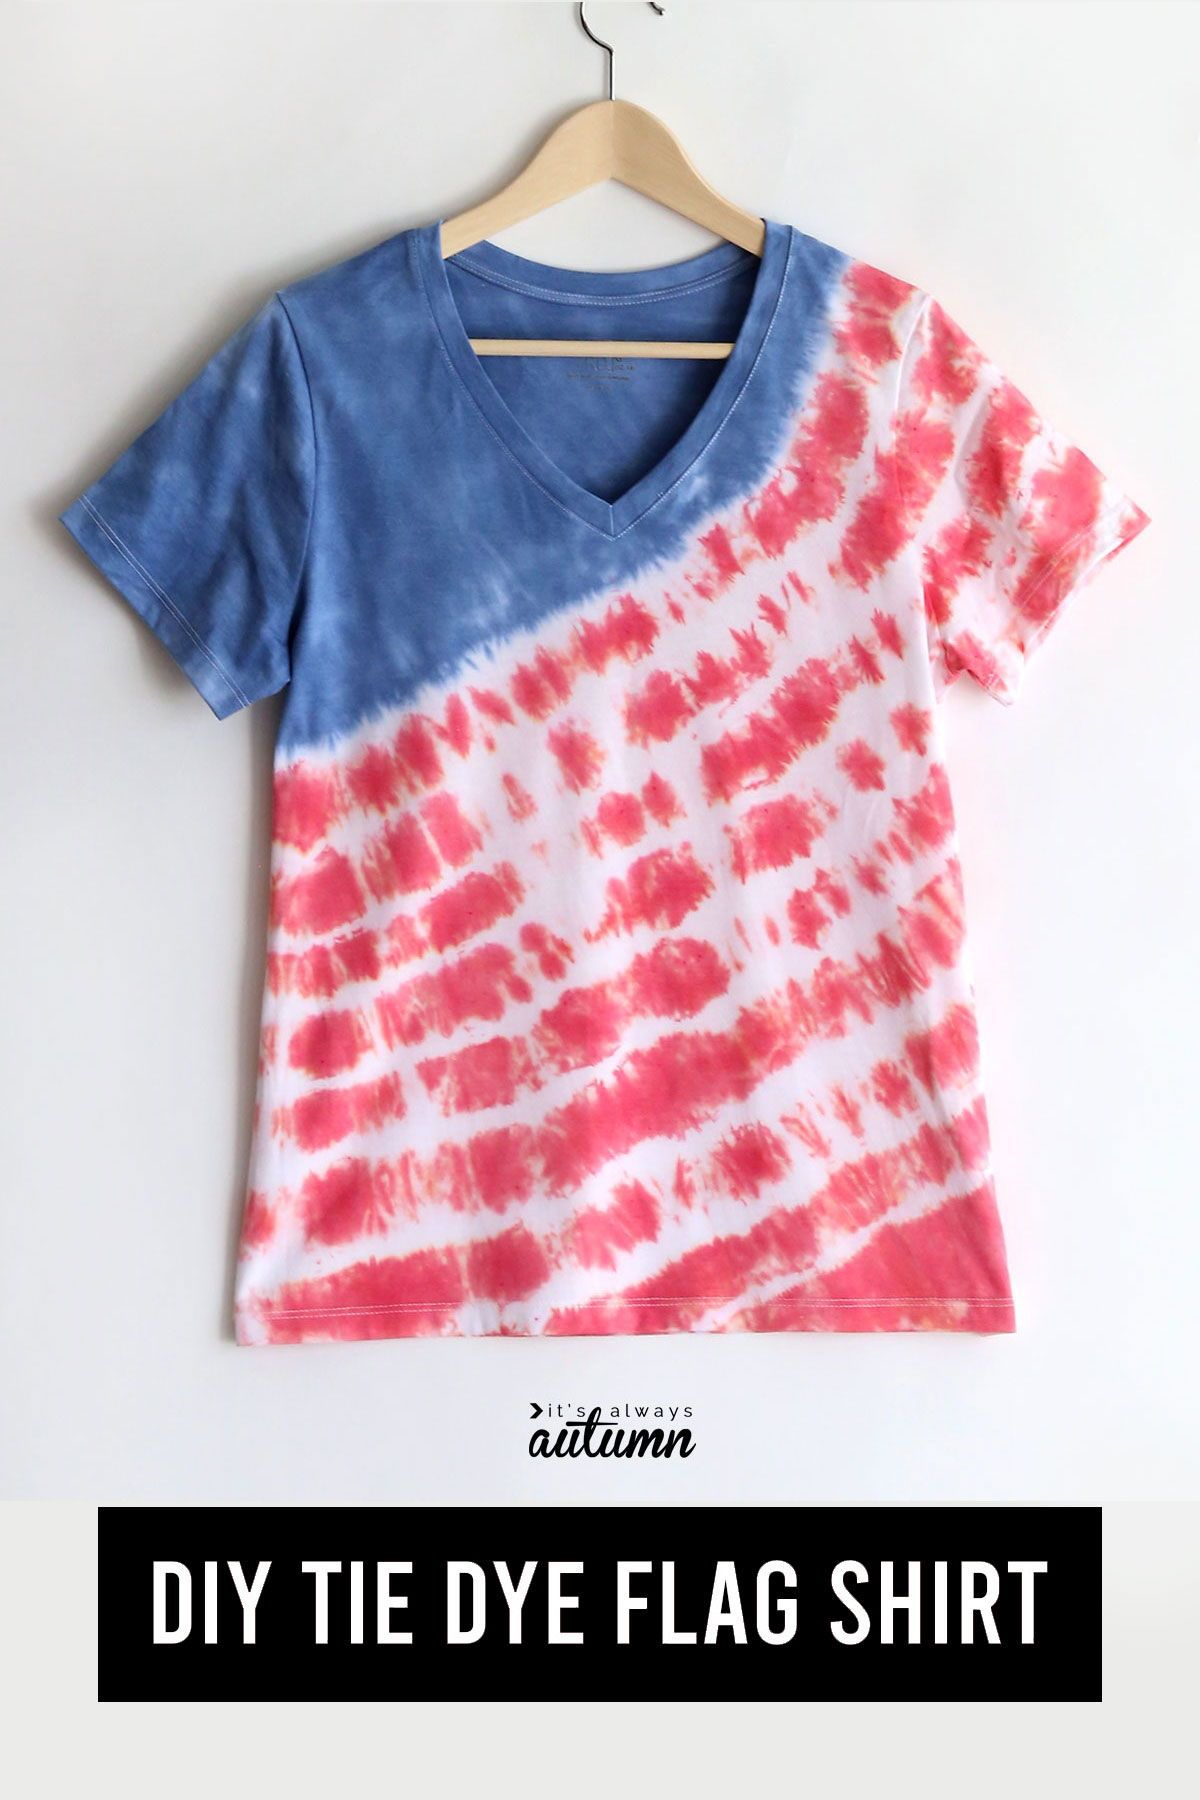 Diy Red White And Blue Tie Dye Shirt For The Fourth Of July It S Always Autumn In 2020 Tie Dye Blue Tie Dye Shirt Diy Tie Dye Flag Shirt